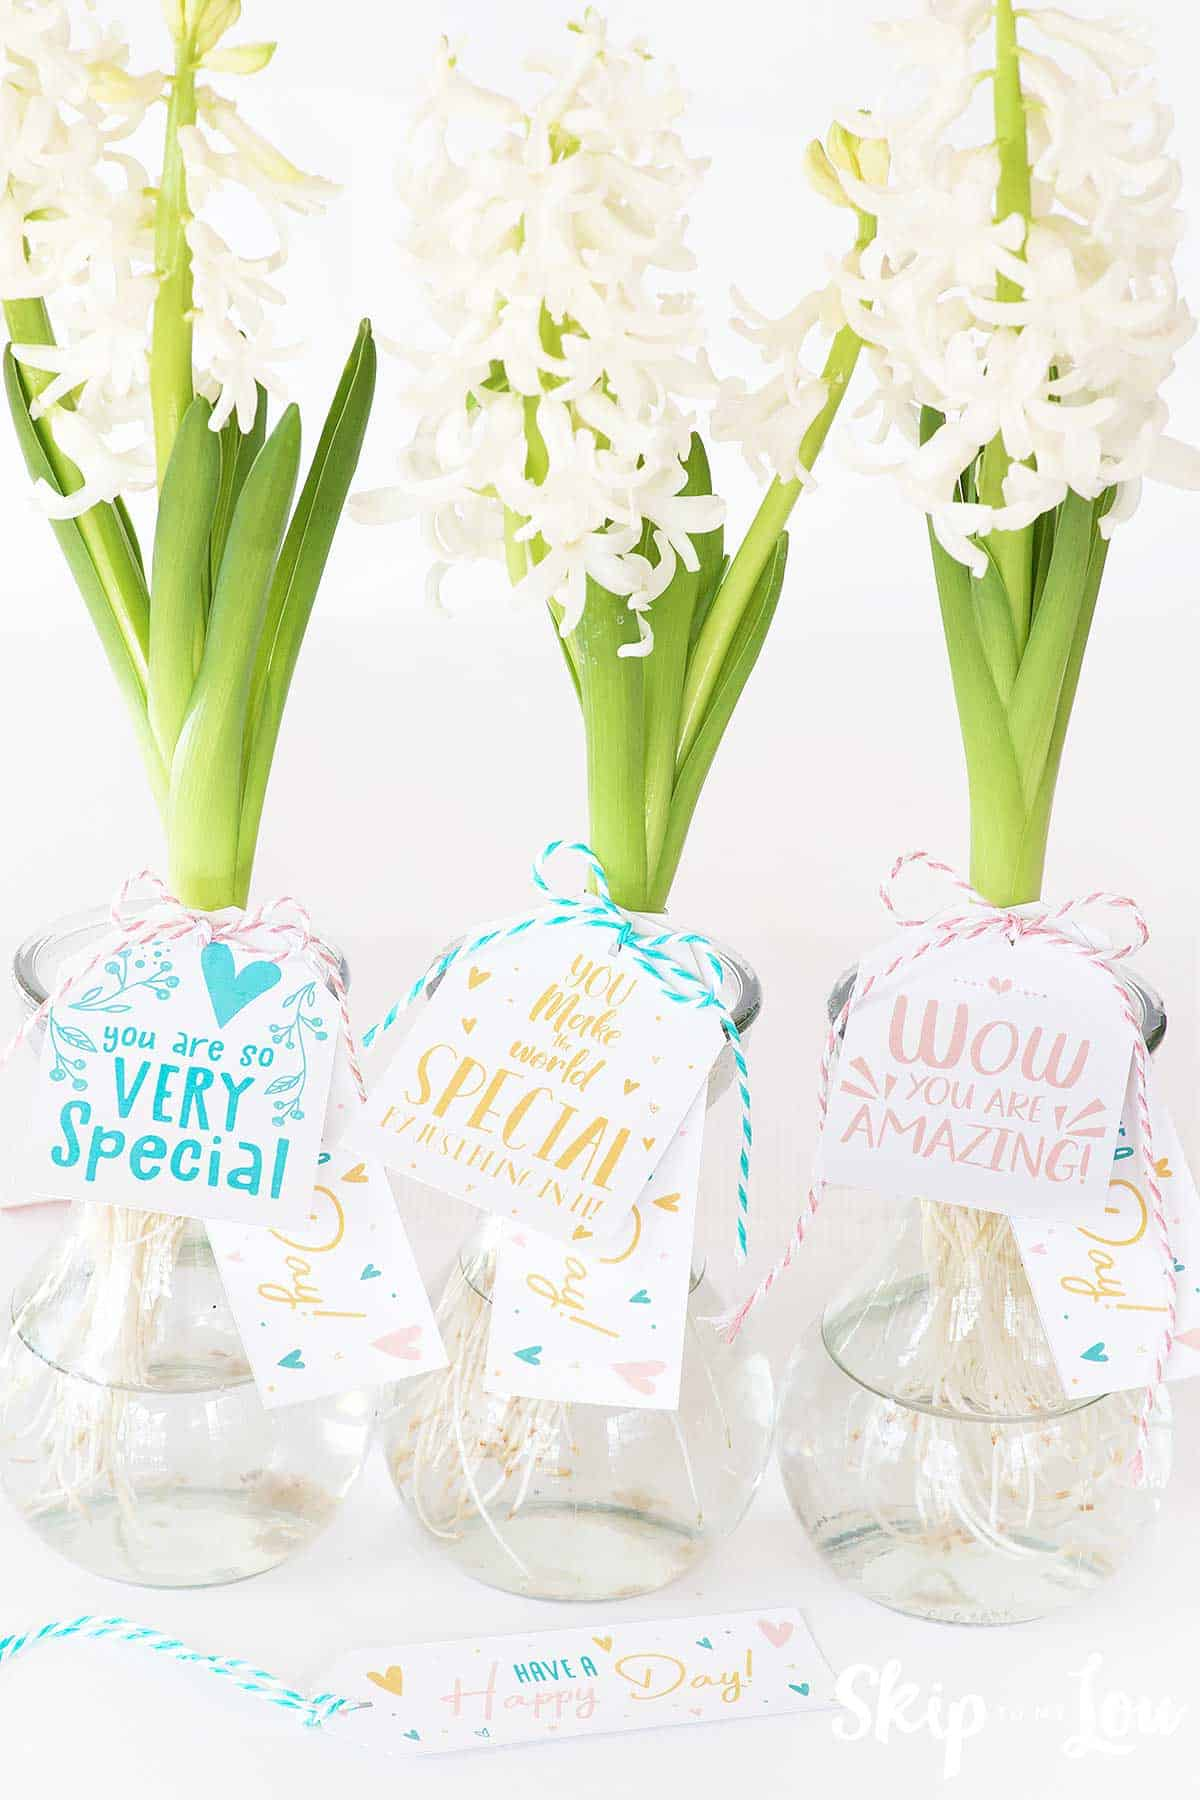 hyacinths in glass vases with gift tags